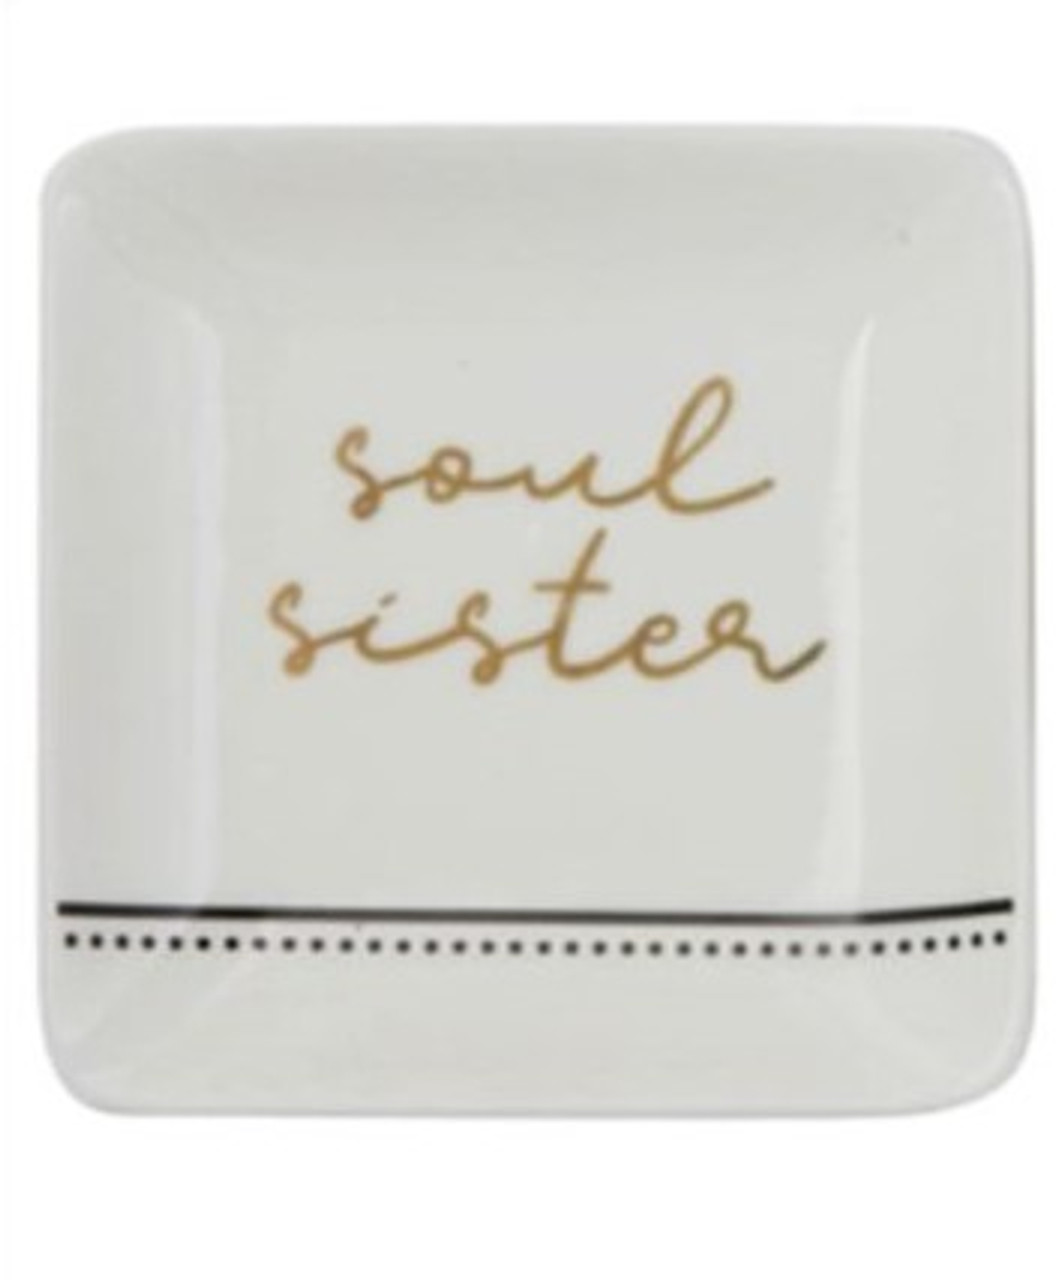 """Stoneware trinket tray with gold electroplating """"soul sister"""" sentiment. 4"""" square."""